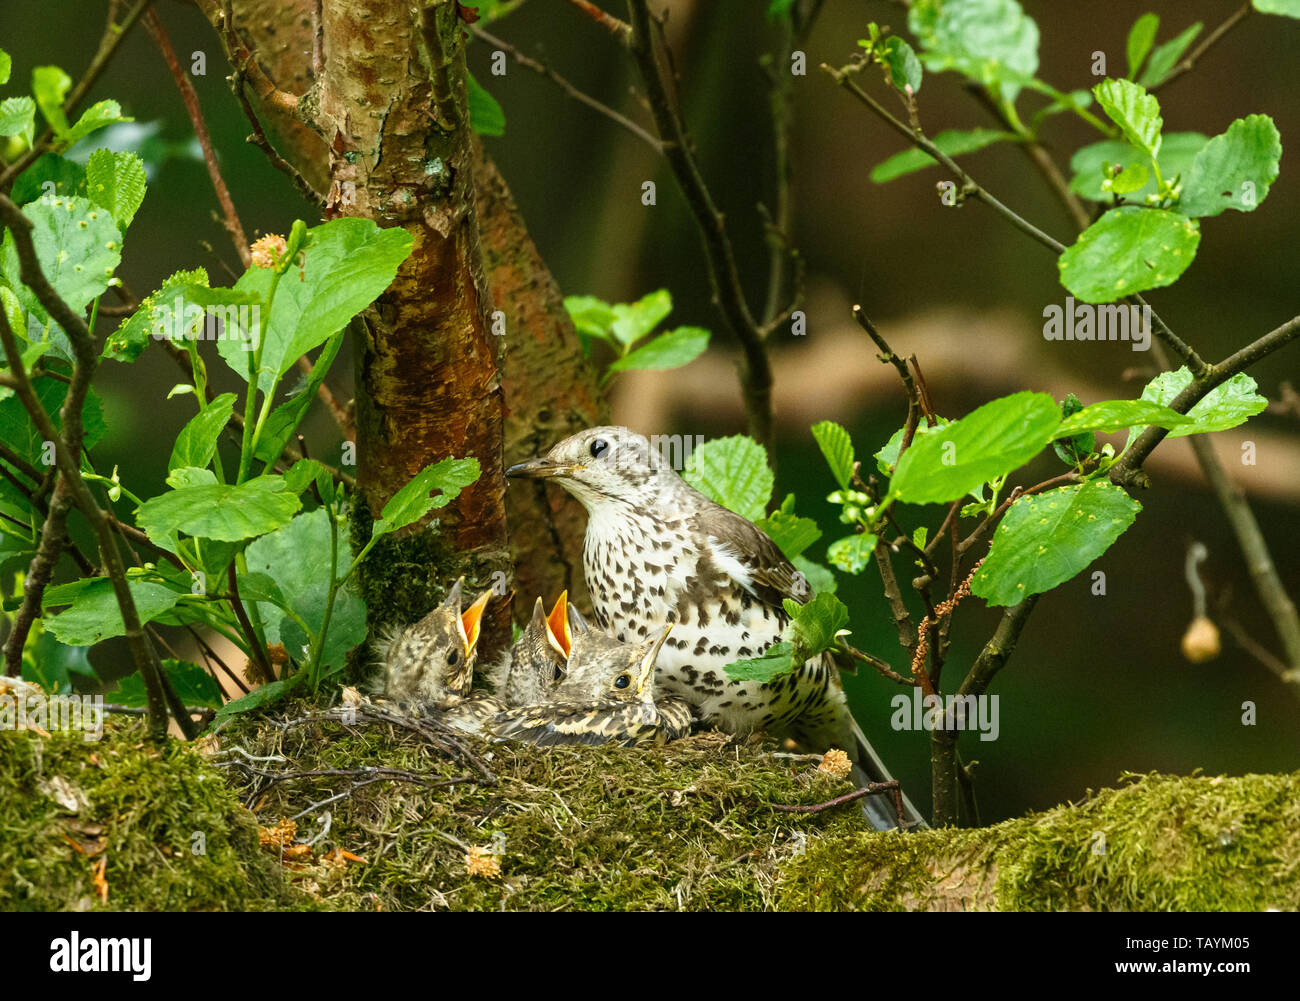 Adult Mistle thrush on a nest with fledglings. - Stock Image